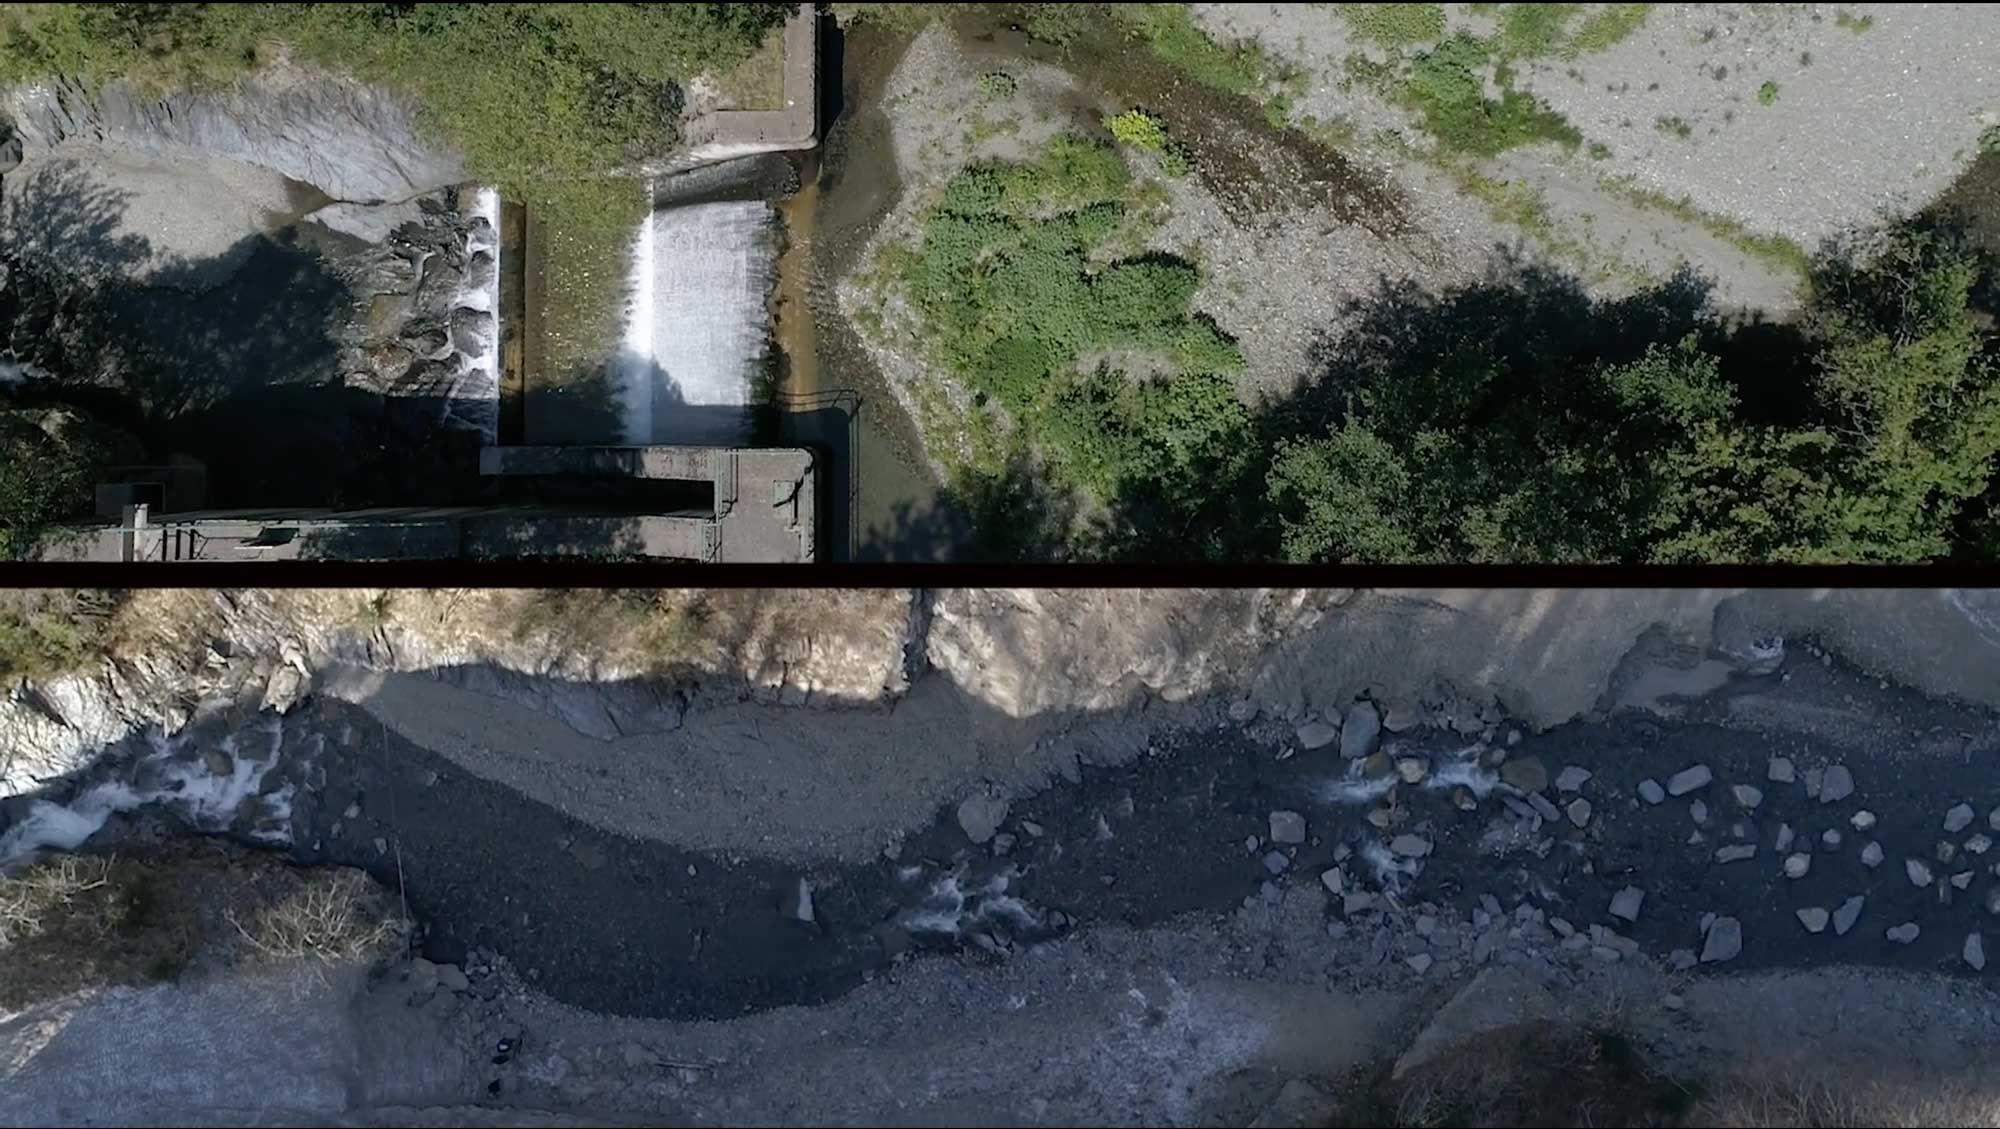 Molló Dam Removal in Catalonia, Spain